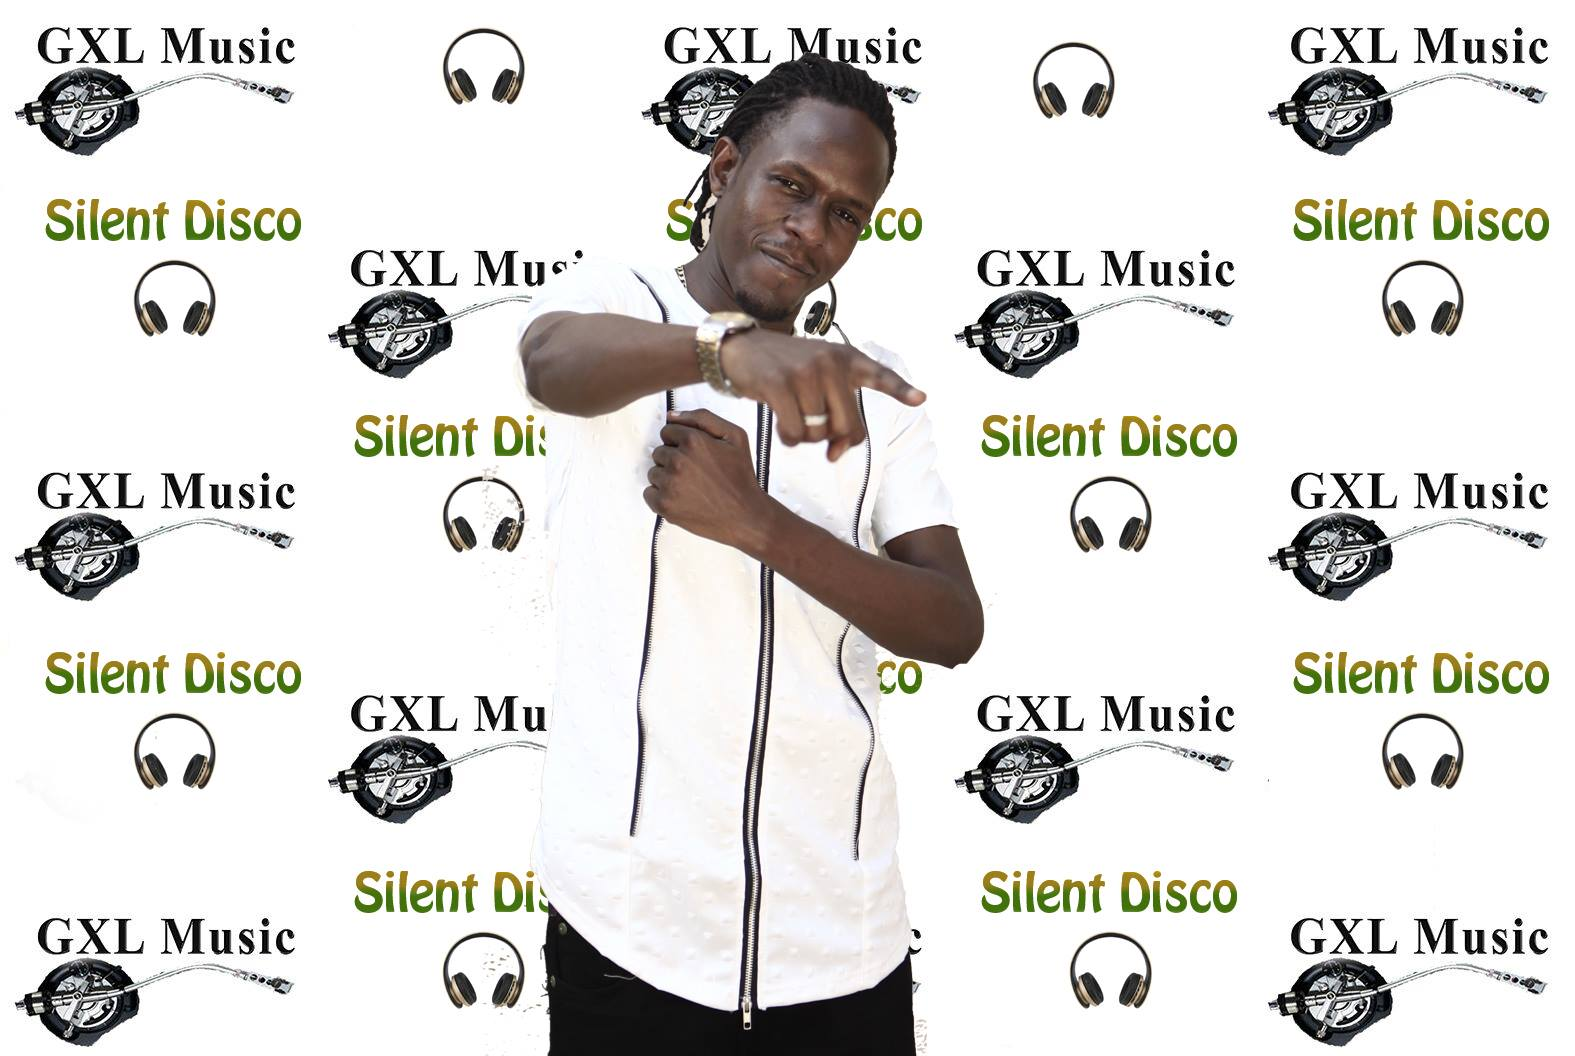 Deejay GXL to rock the silent Disco